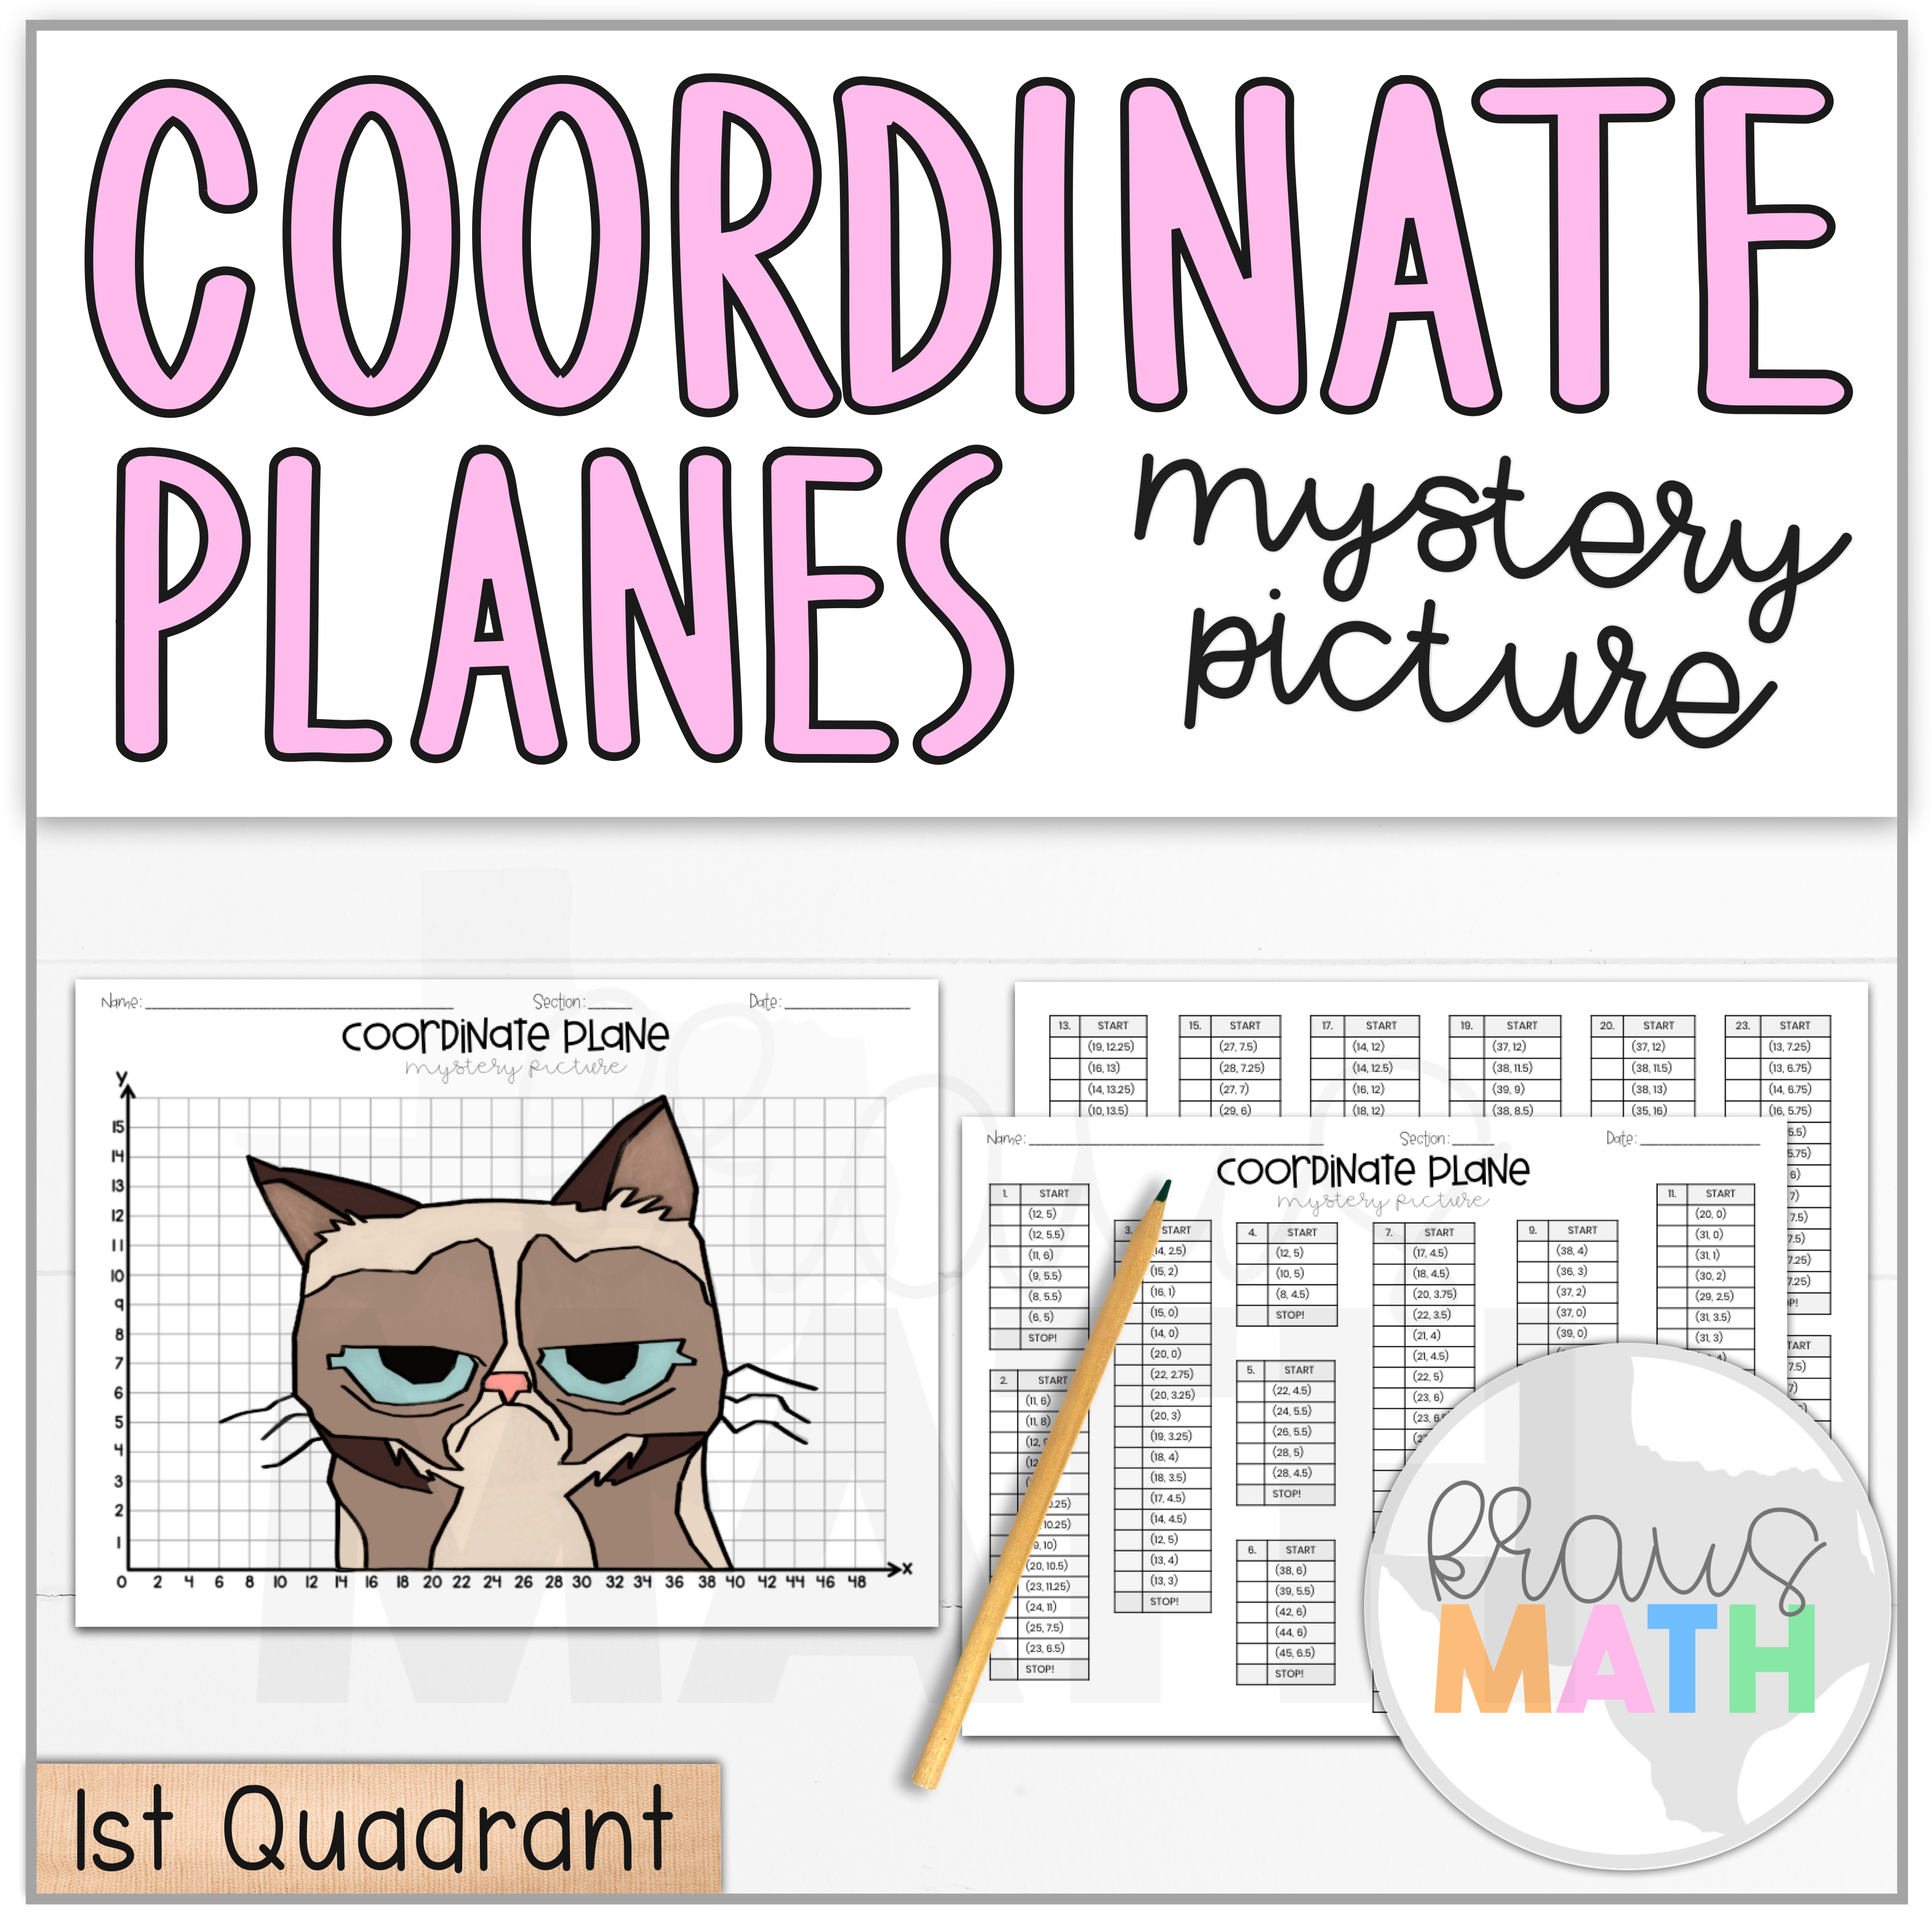 Grumpy Cat Coordinate Plane Mystery Picture 1st Quadrant